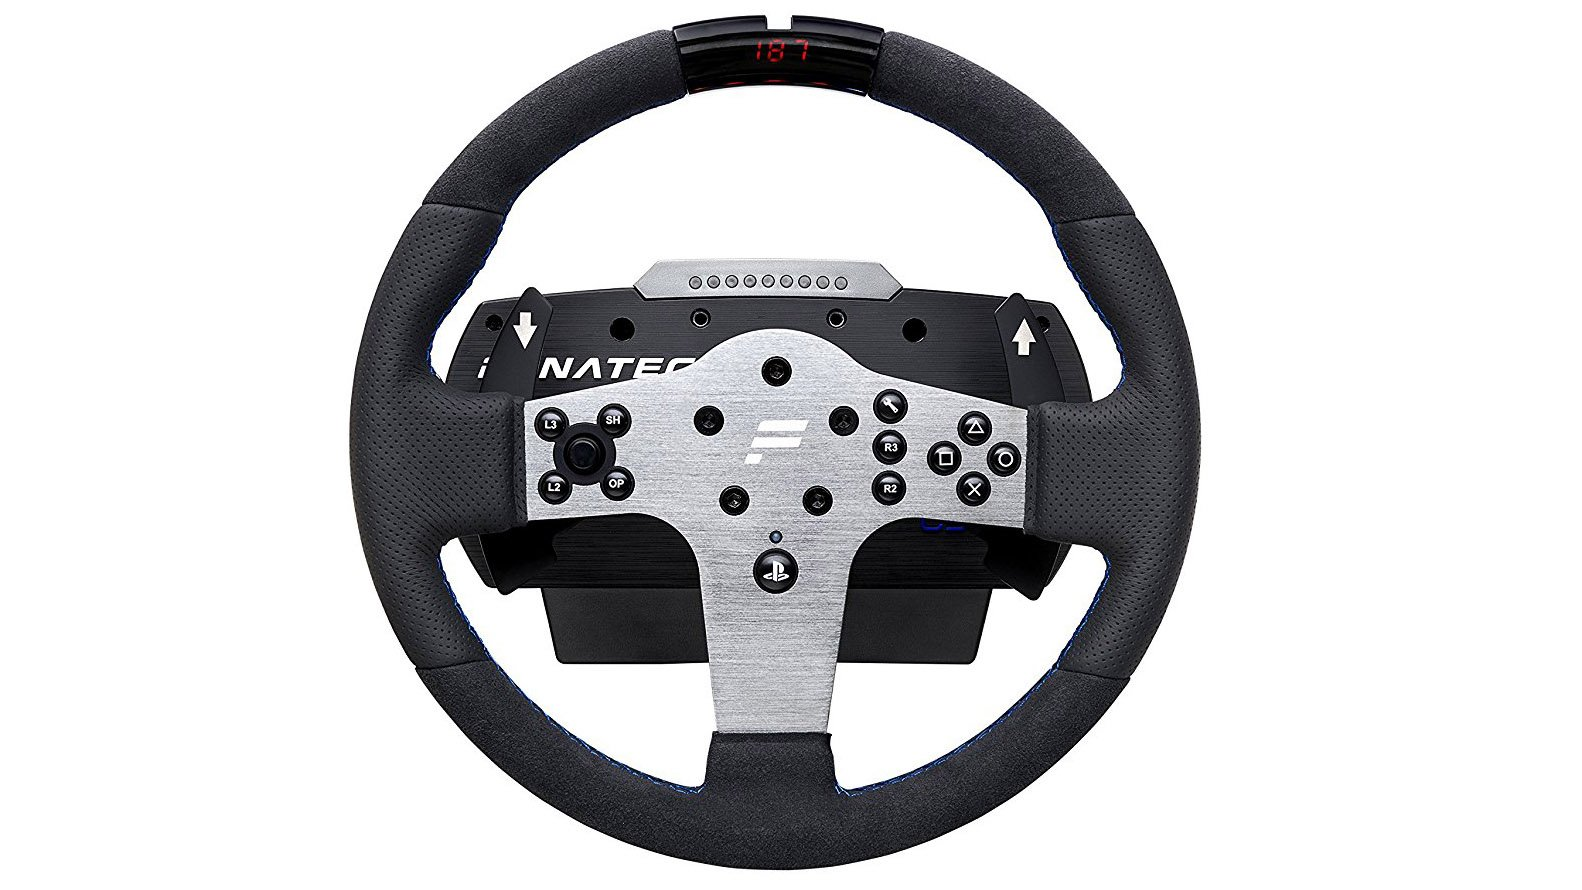 71919cda9f6 For a good while now I've been using the CSL Elite Racing Wheel, and it's  got to be the most advanced racing wheel I've ever tested.